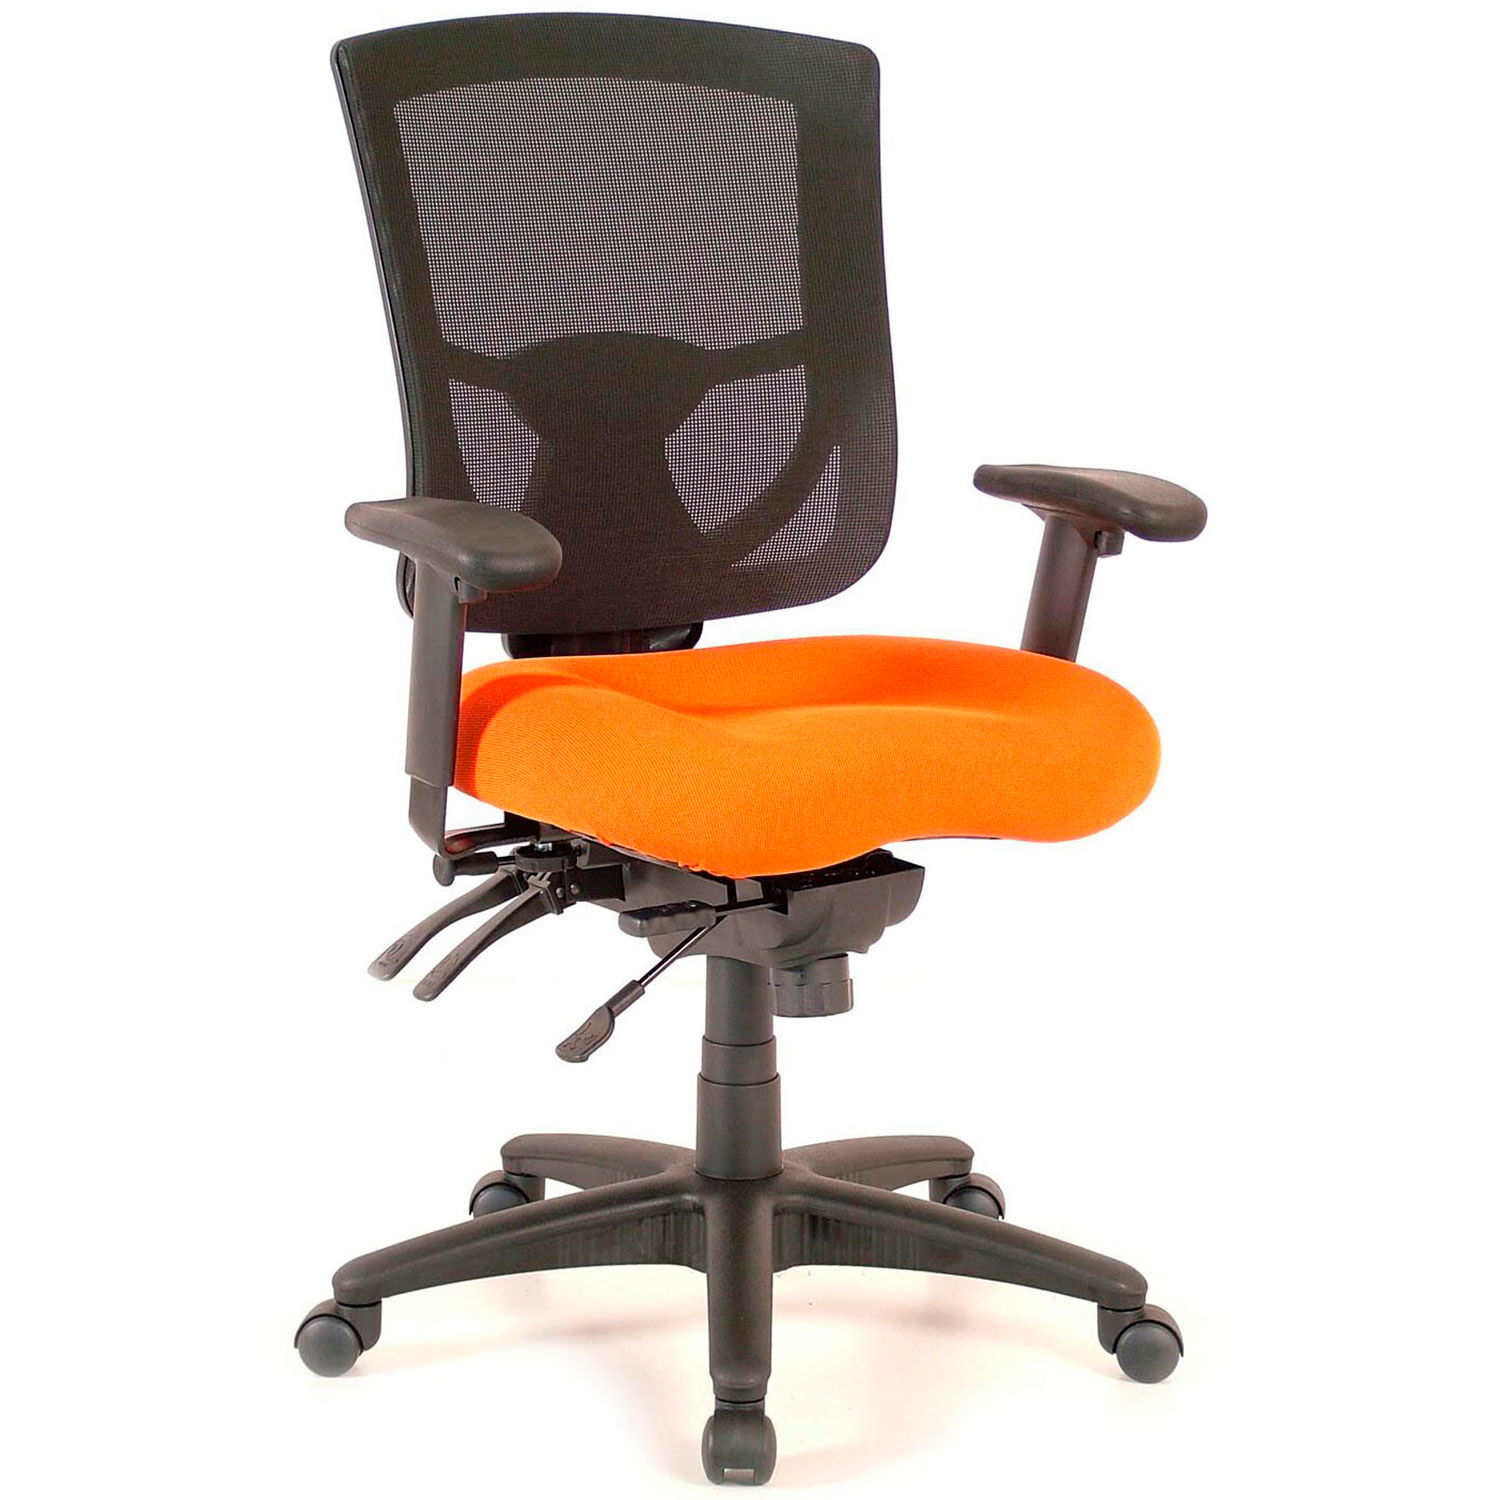 Orange Office Chairs Chairs Mesh Storlie Executive Mesh Office Chair Orange